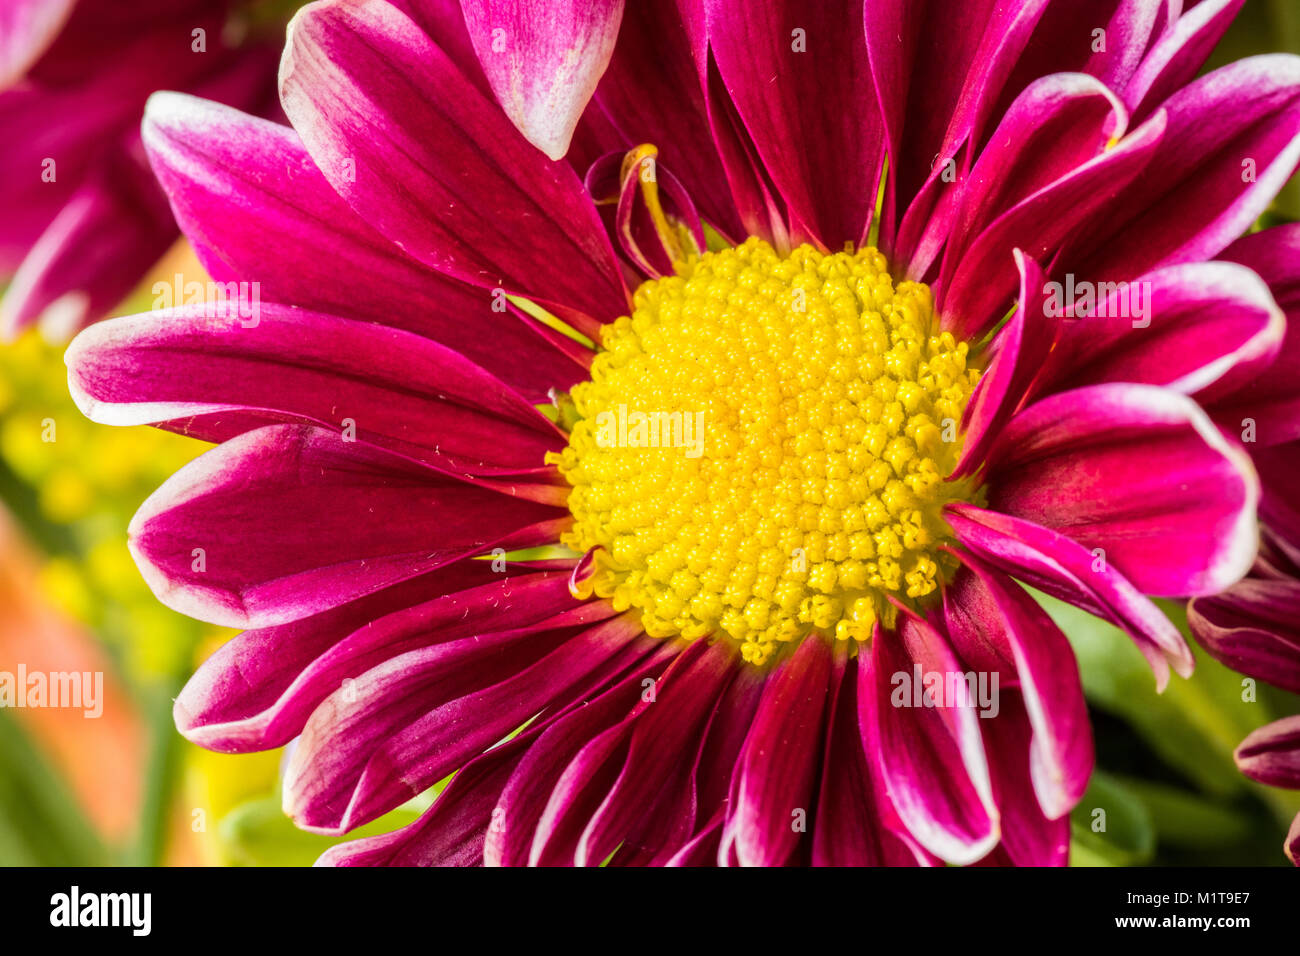 Purple Flower With White Center Stock Photos Purple Flower With